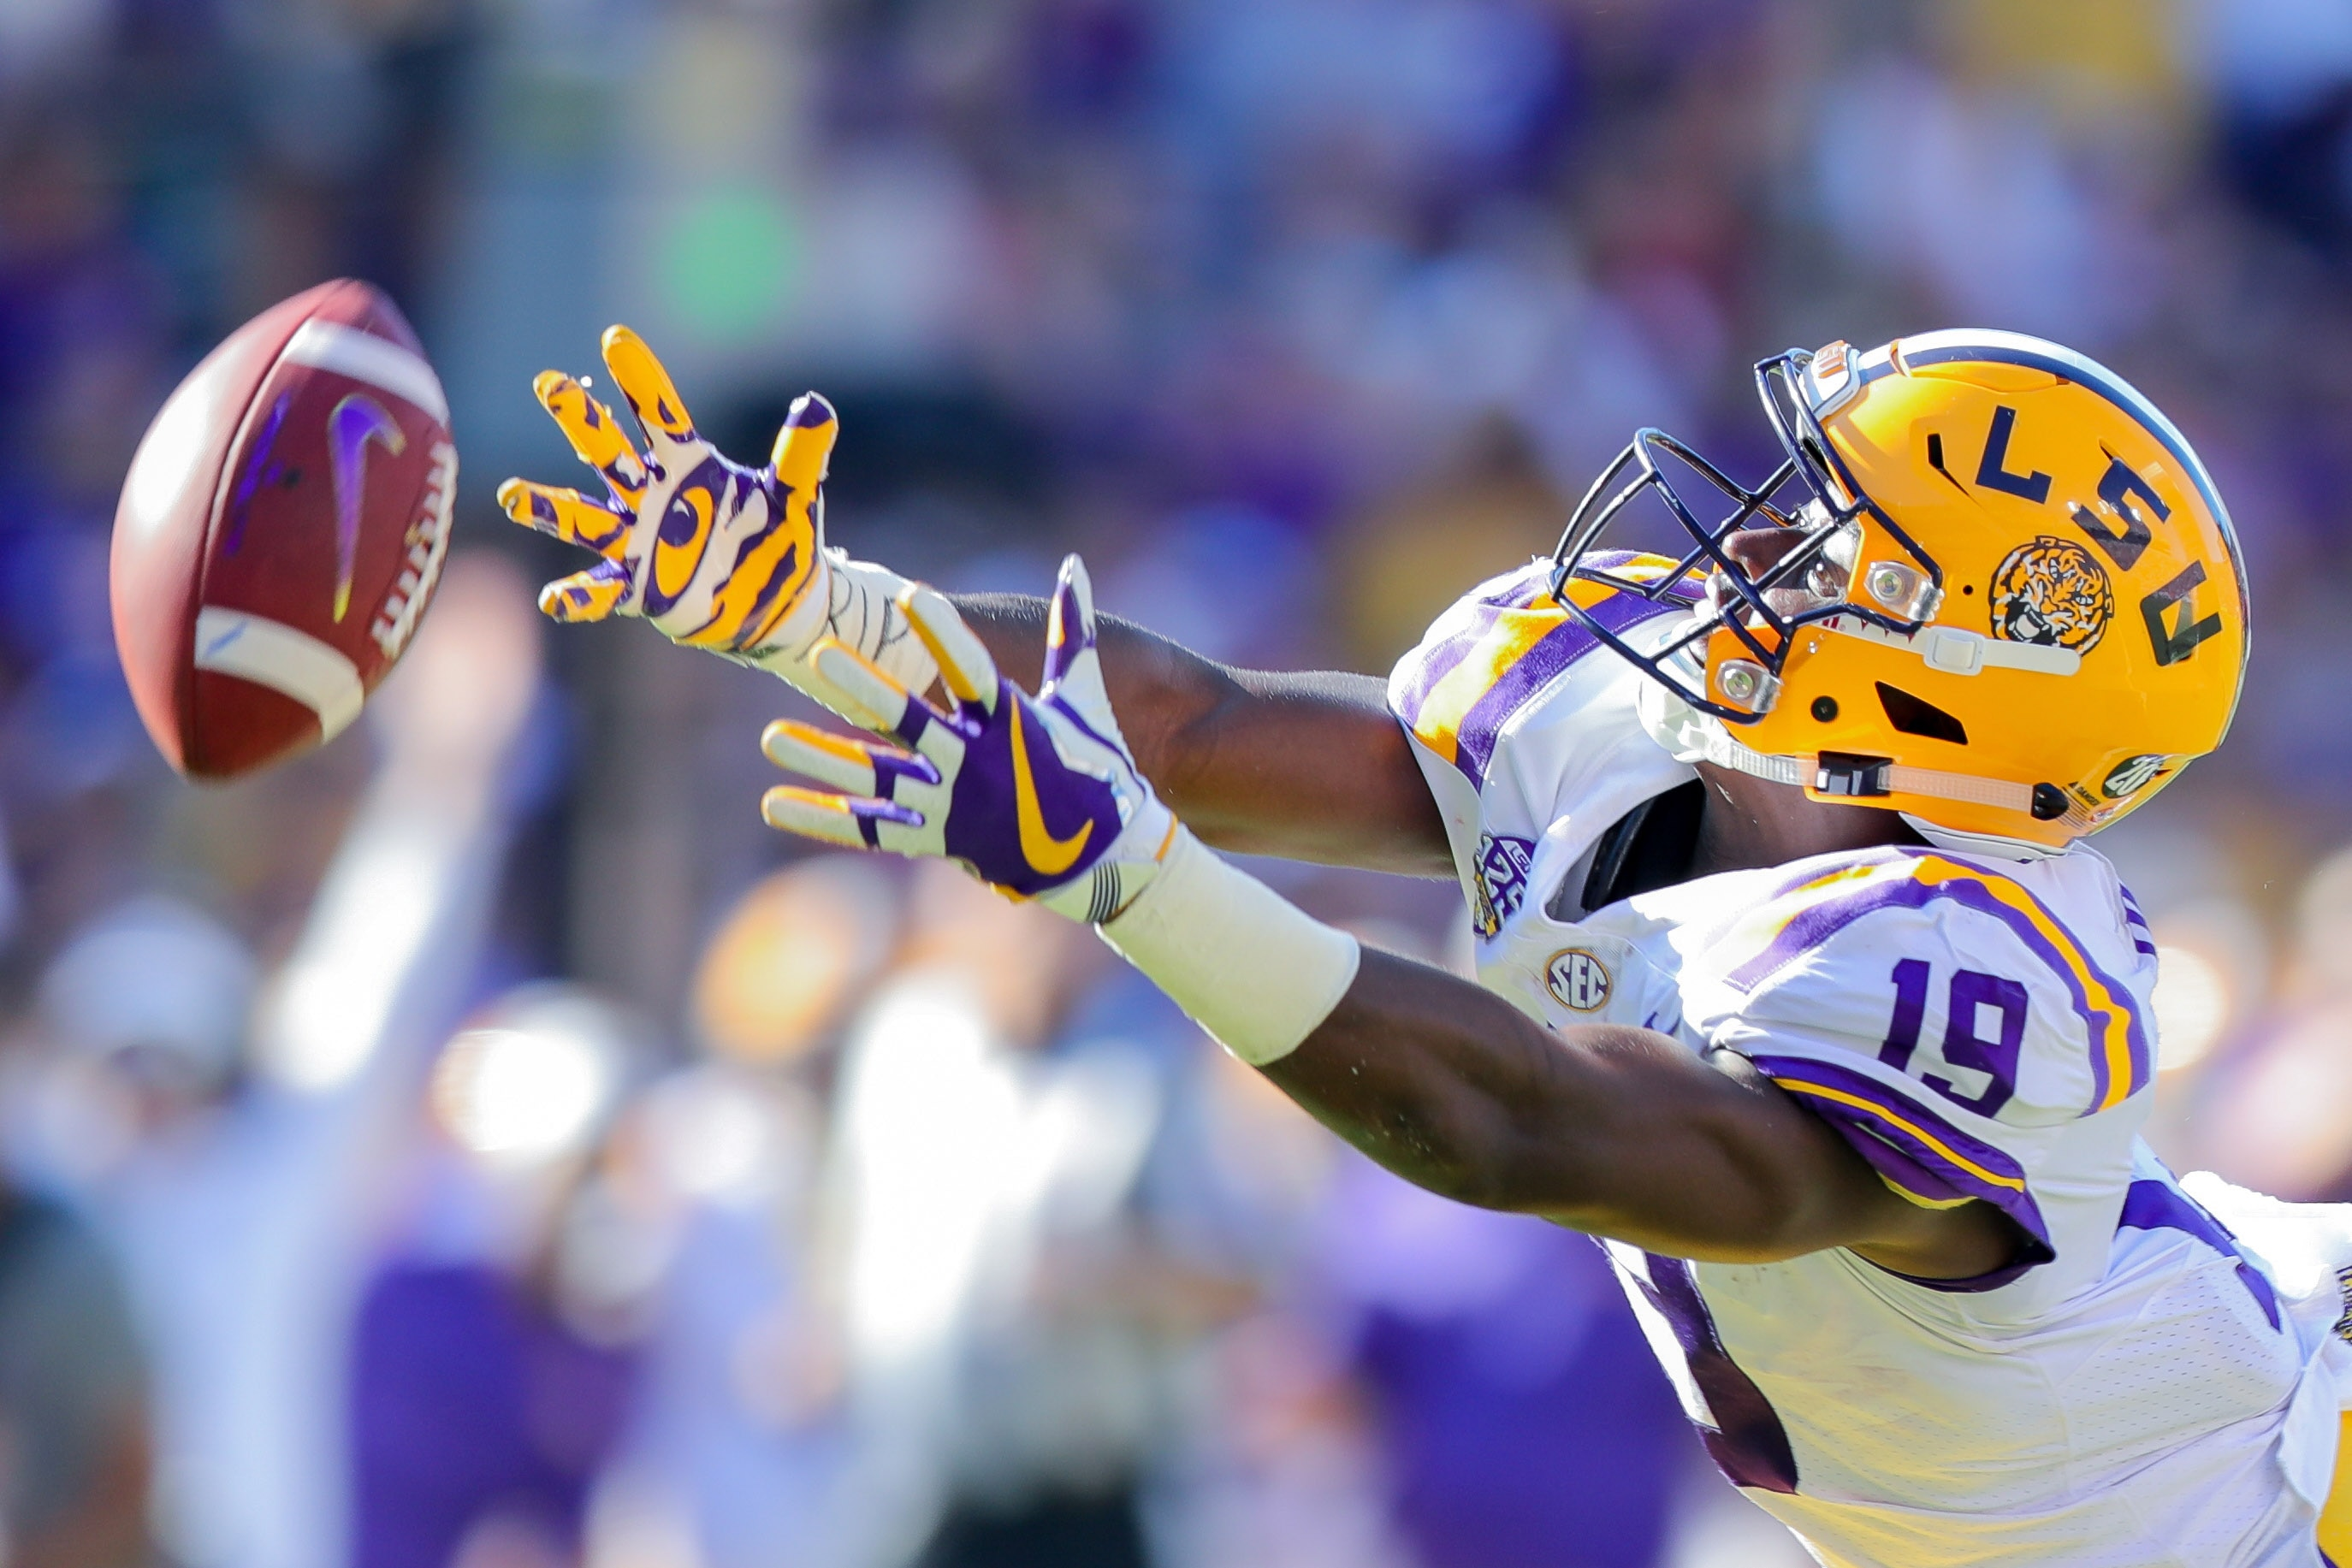 What do you think about these LSU footballs ...